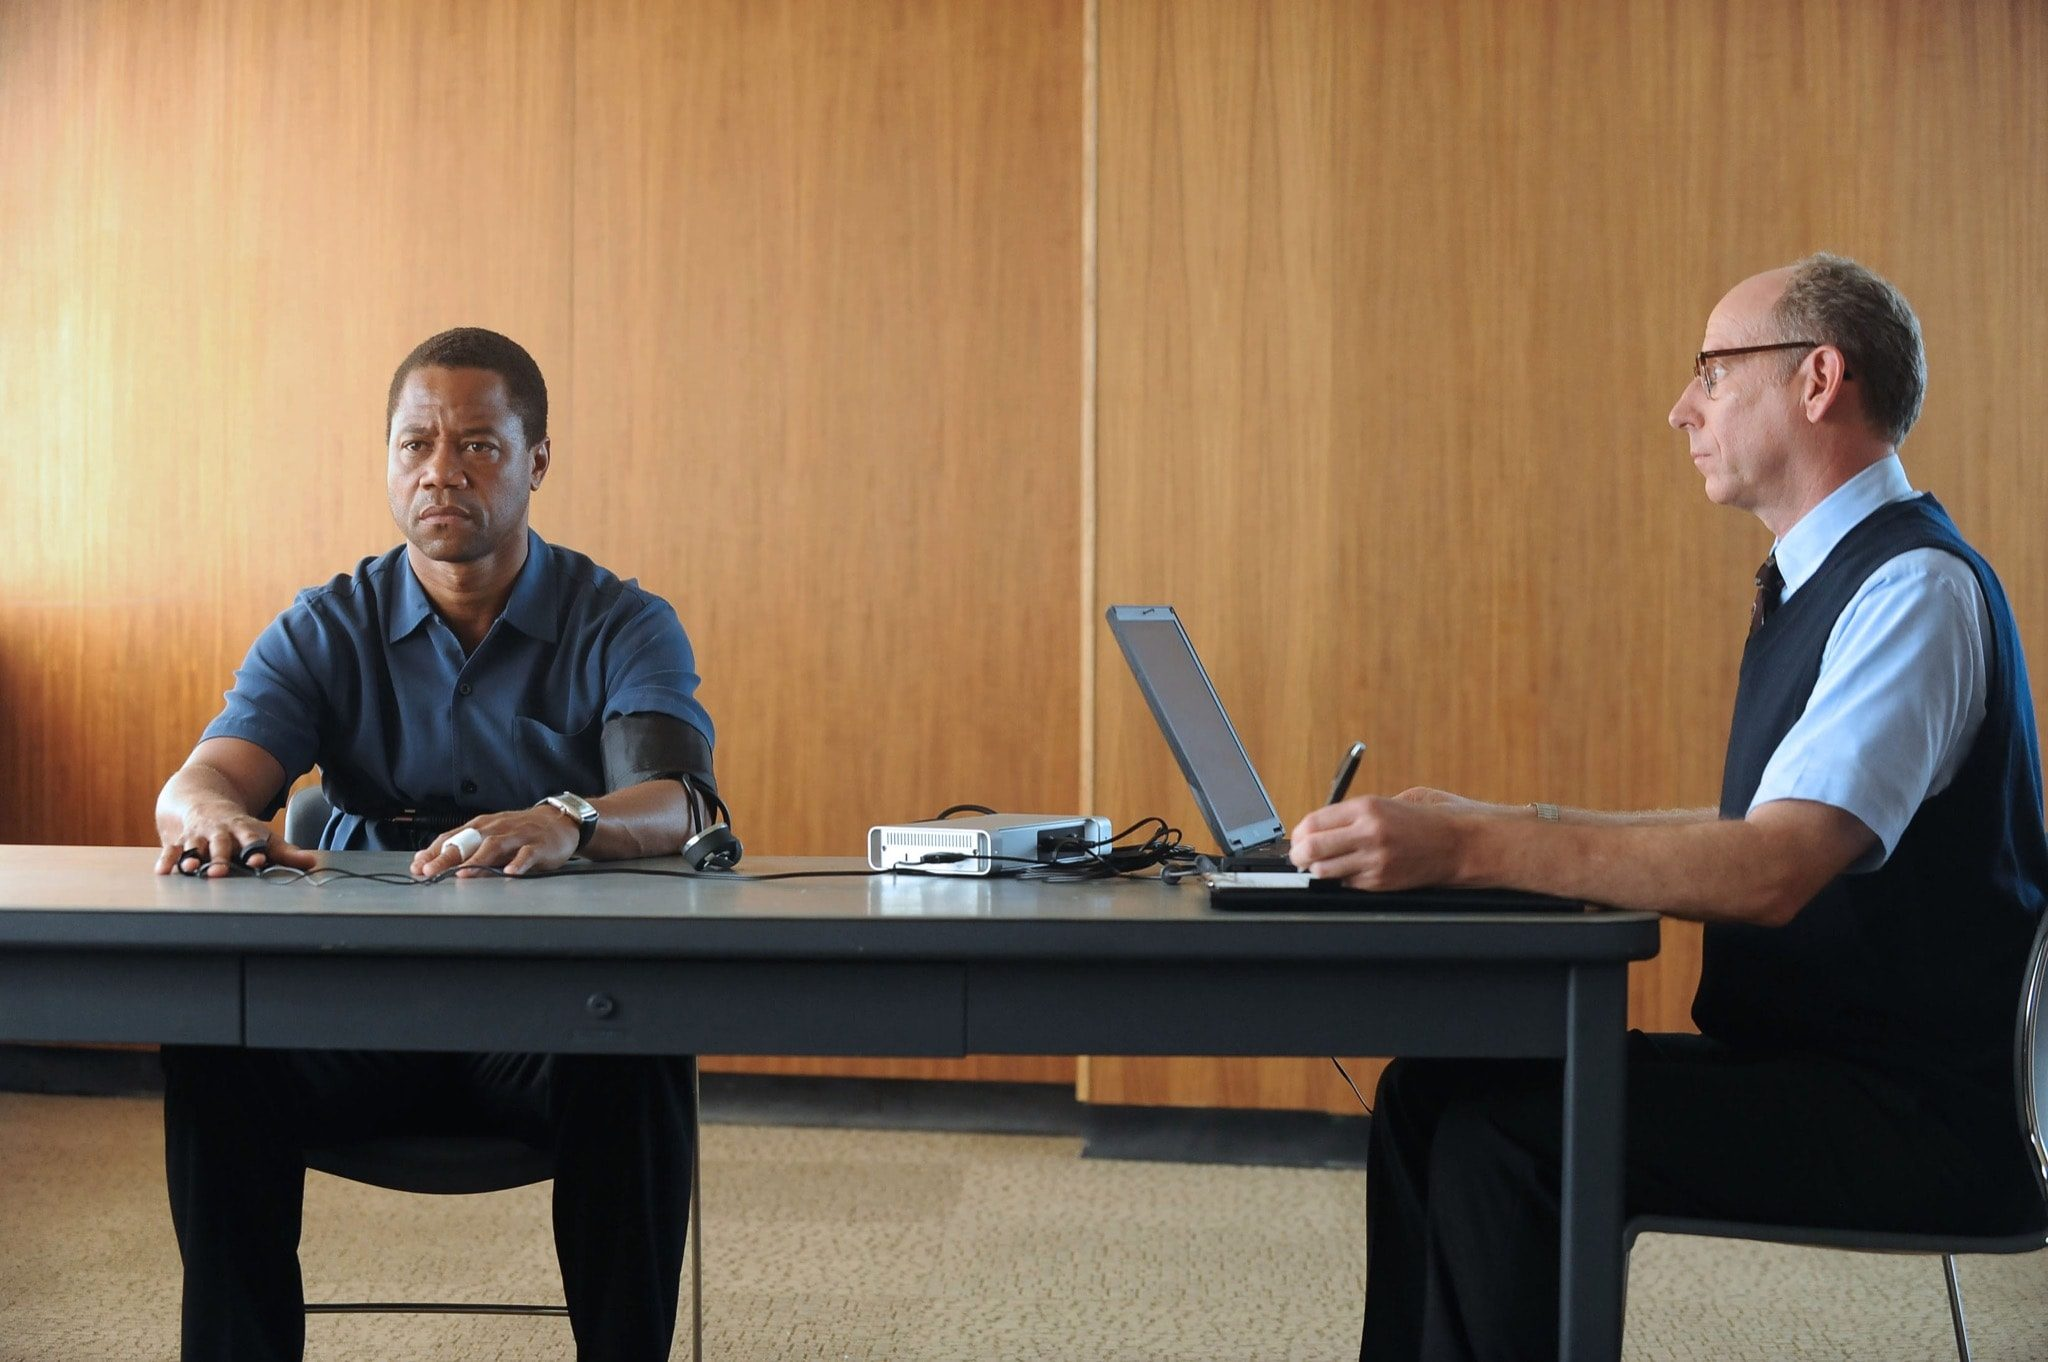 the-people-v-oj-simpson-american-crime-story-image-episode-1